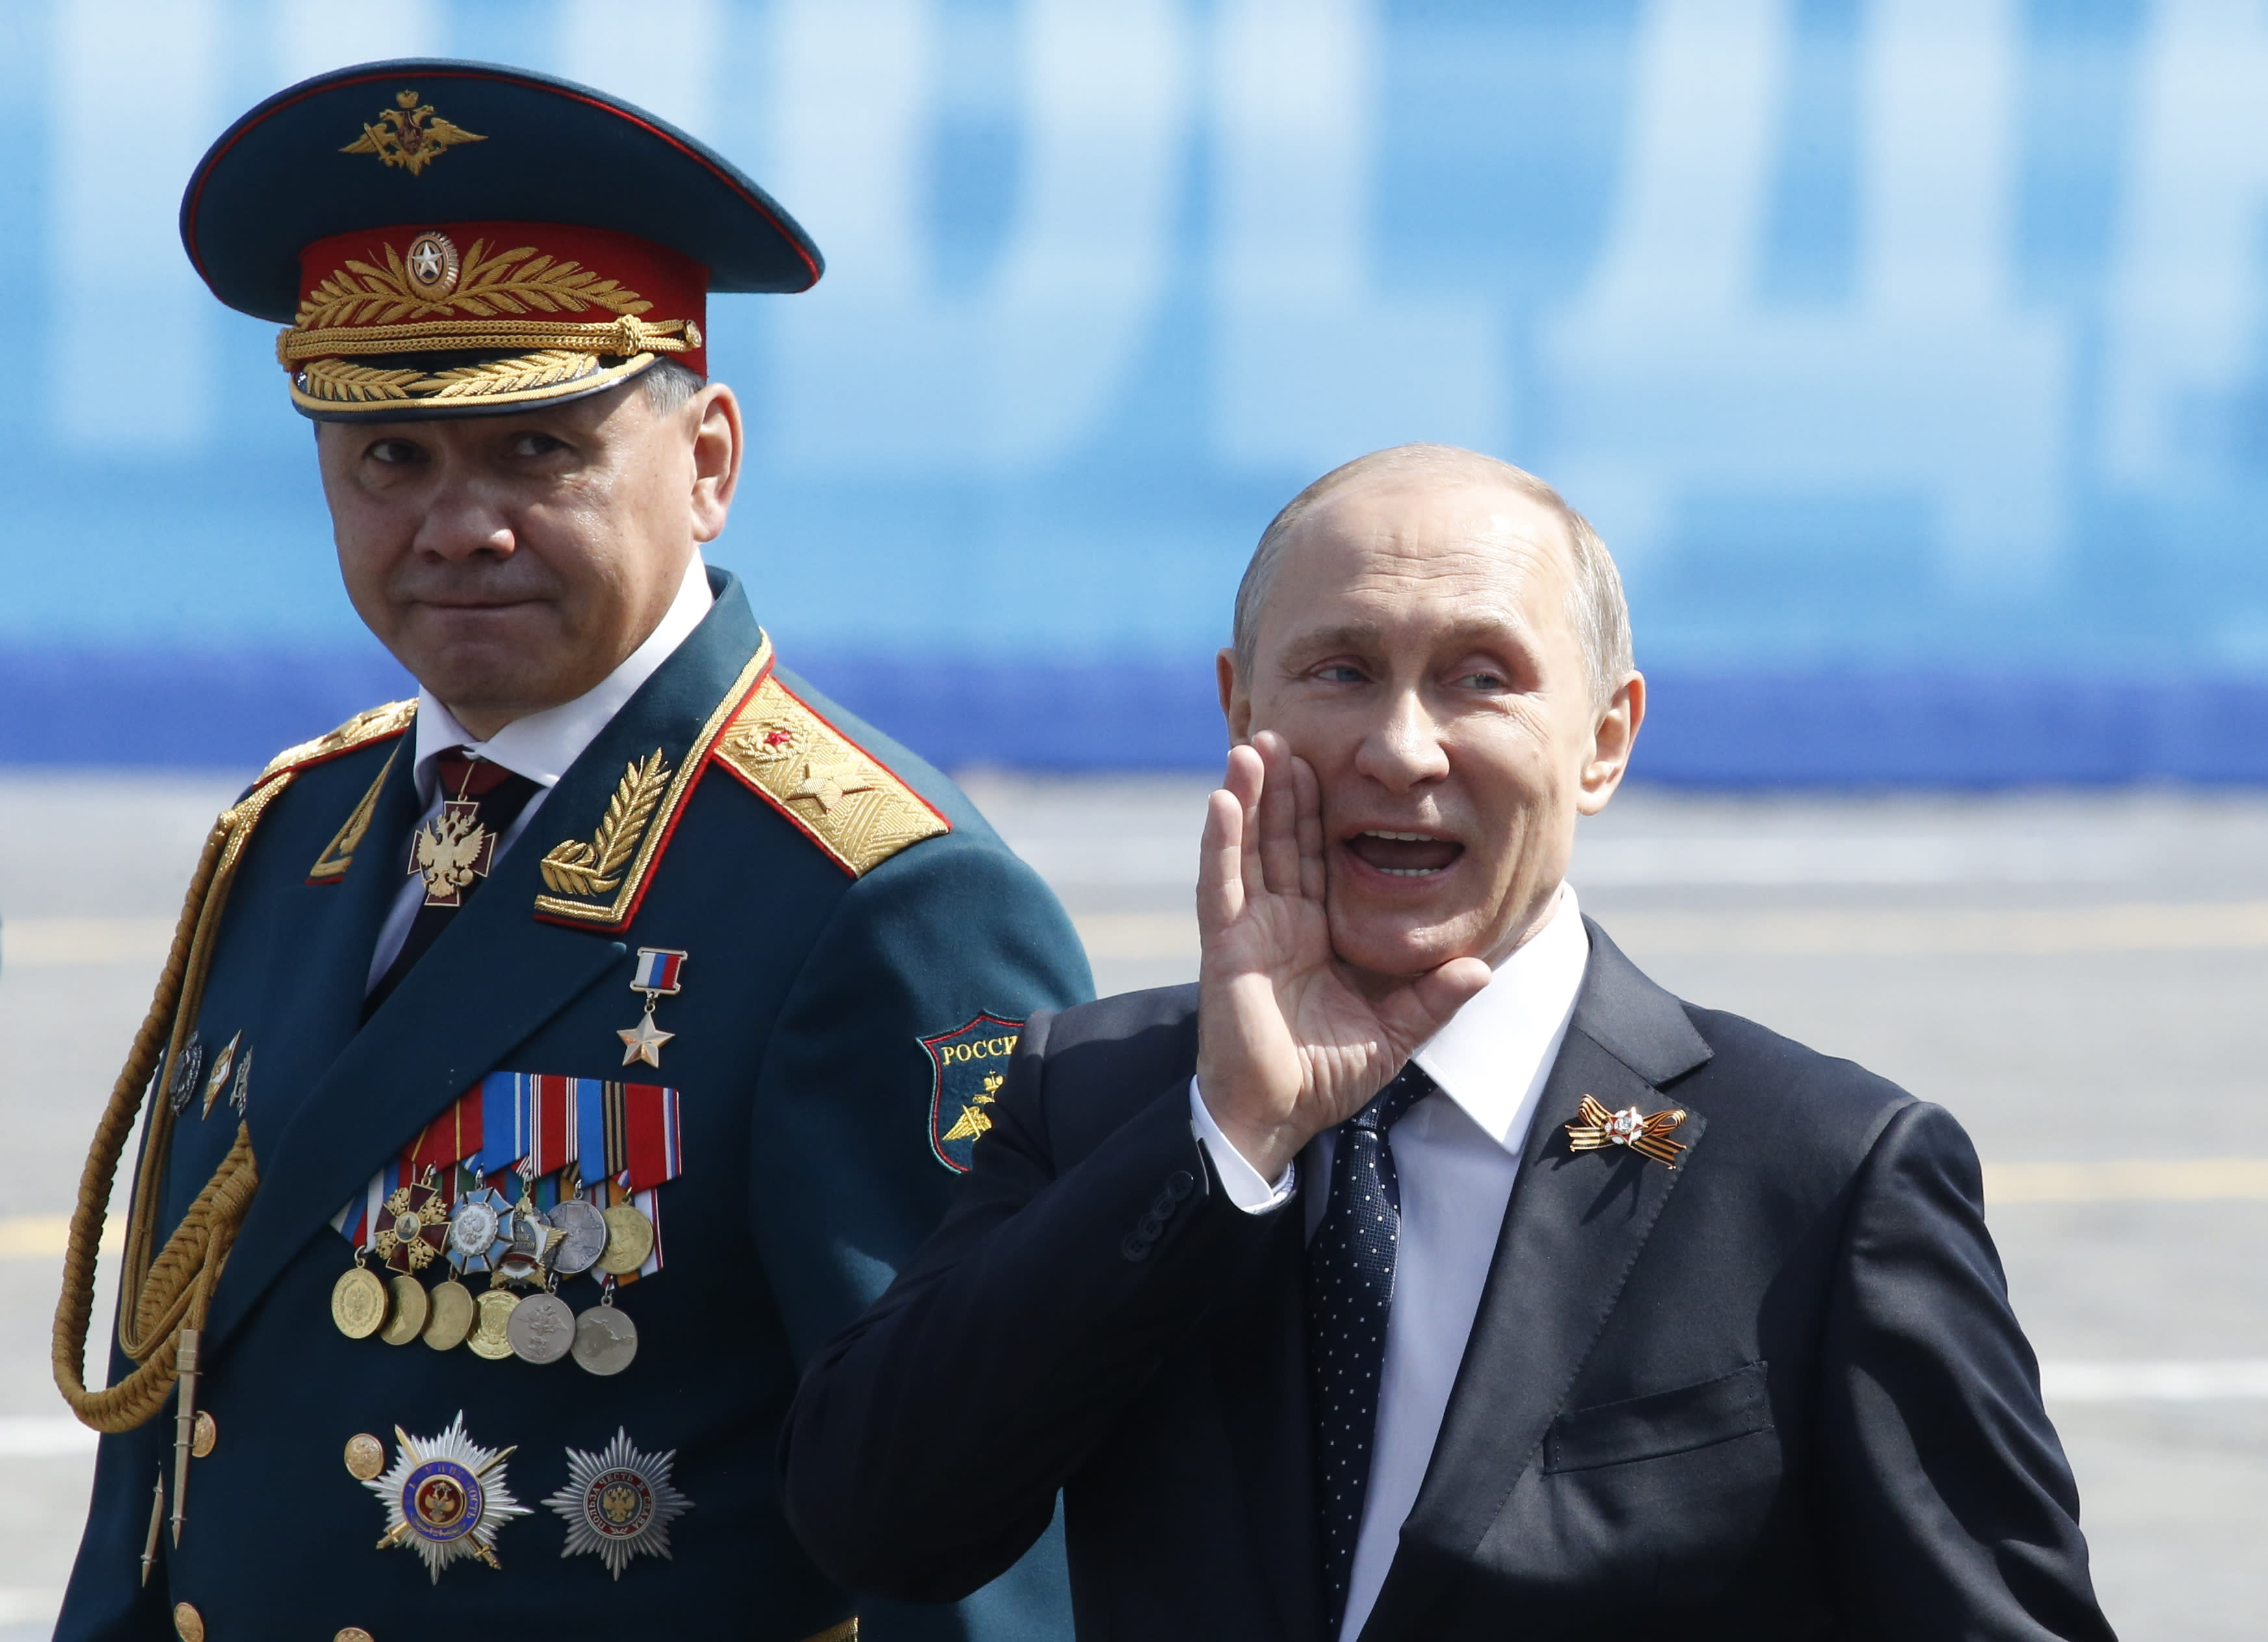 Putin is going to extreme lengths to hide Russian soldiers who are dying while fighting in Ukraine